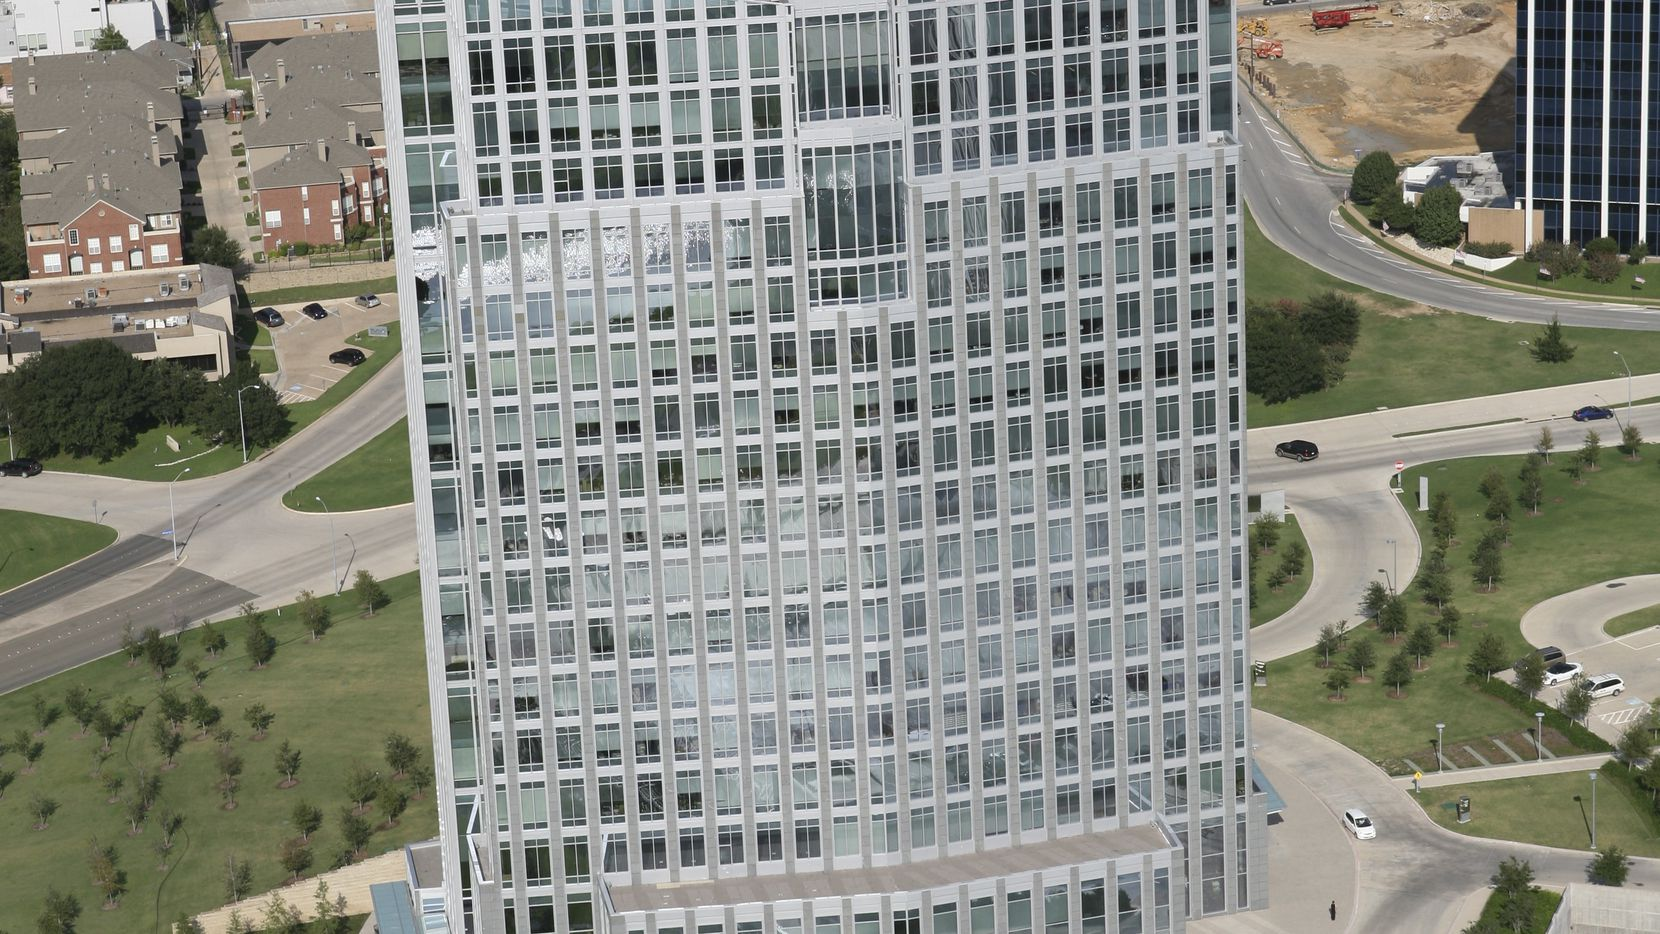 Property Damage Appraisers will move its base to the downtown tower.